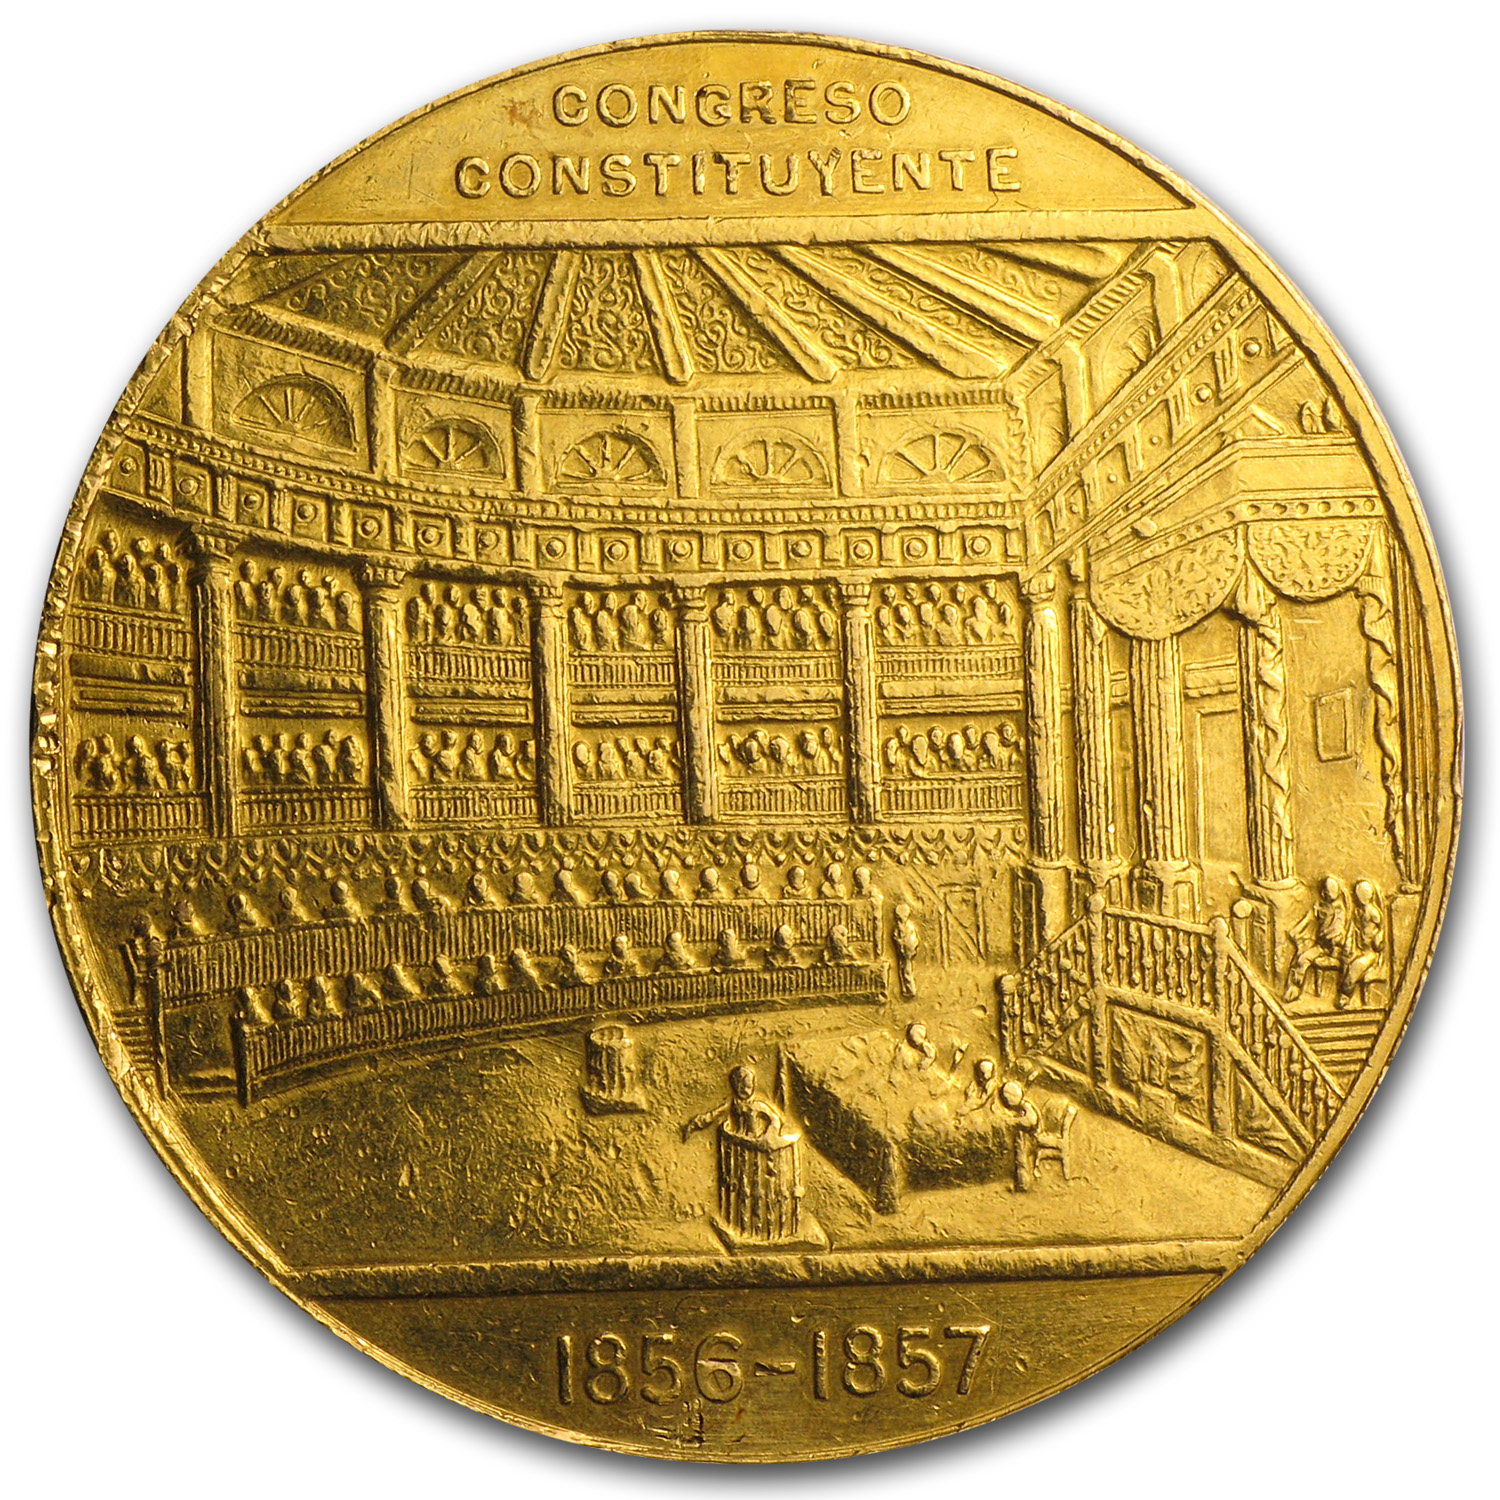 1957 Mexico Centennial of Constitution Gold Medal